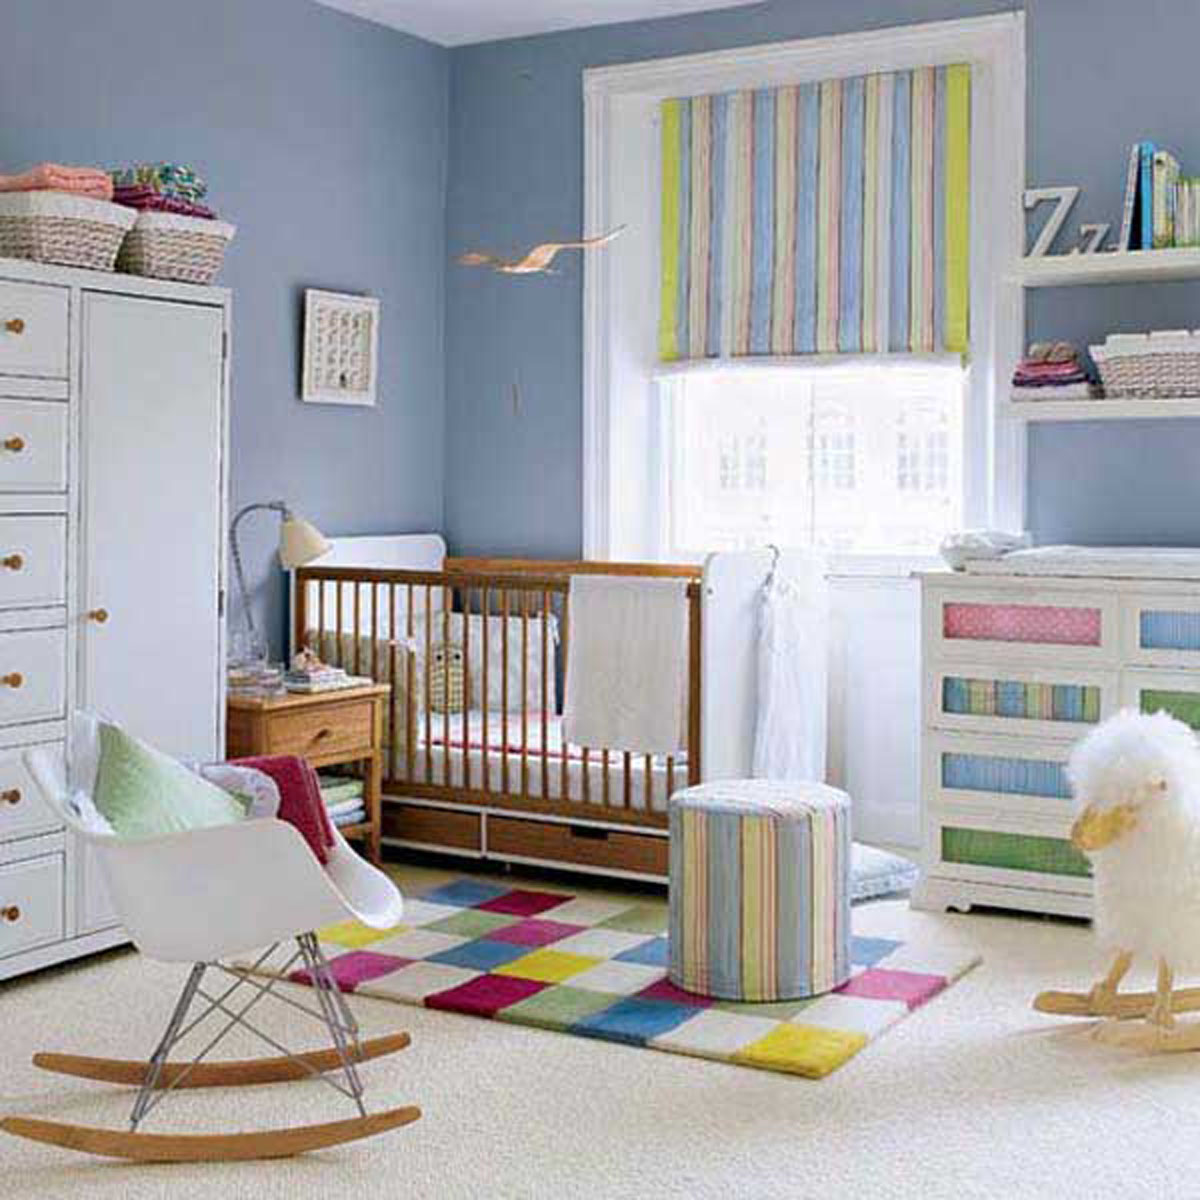 Baby Boys Room Decor 21094 Wallpapers | Free Baby HD Wallpaper and ...